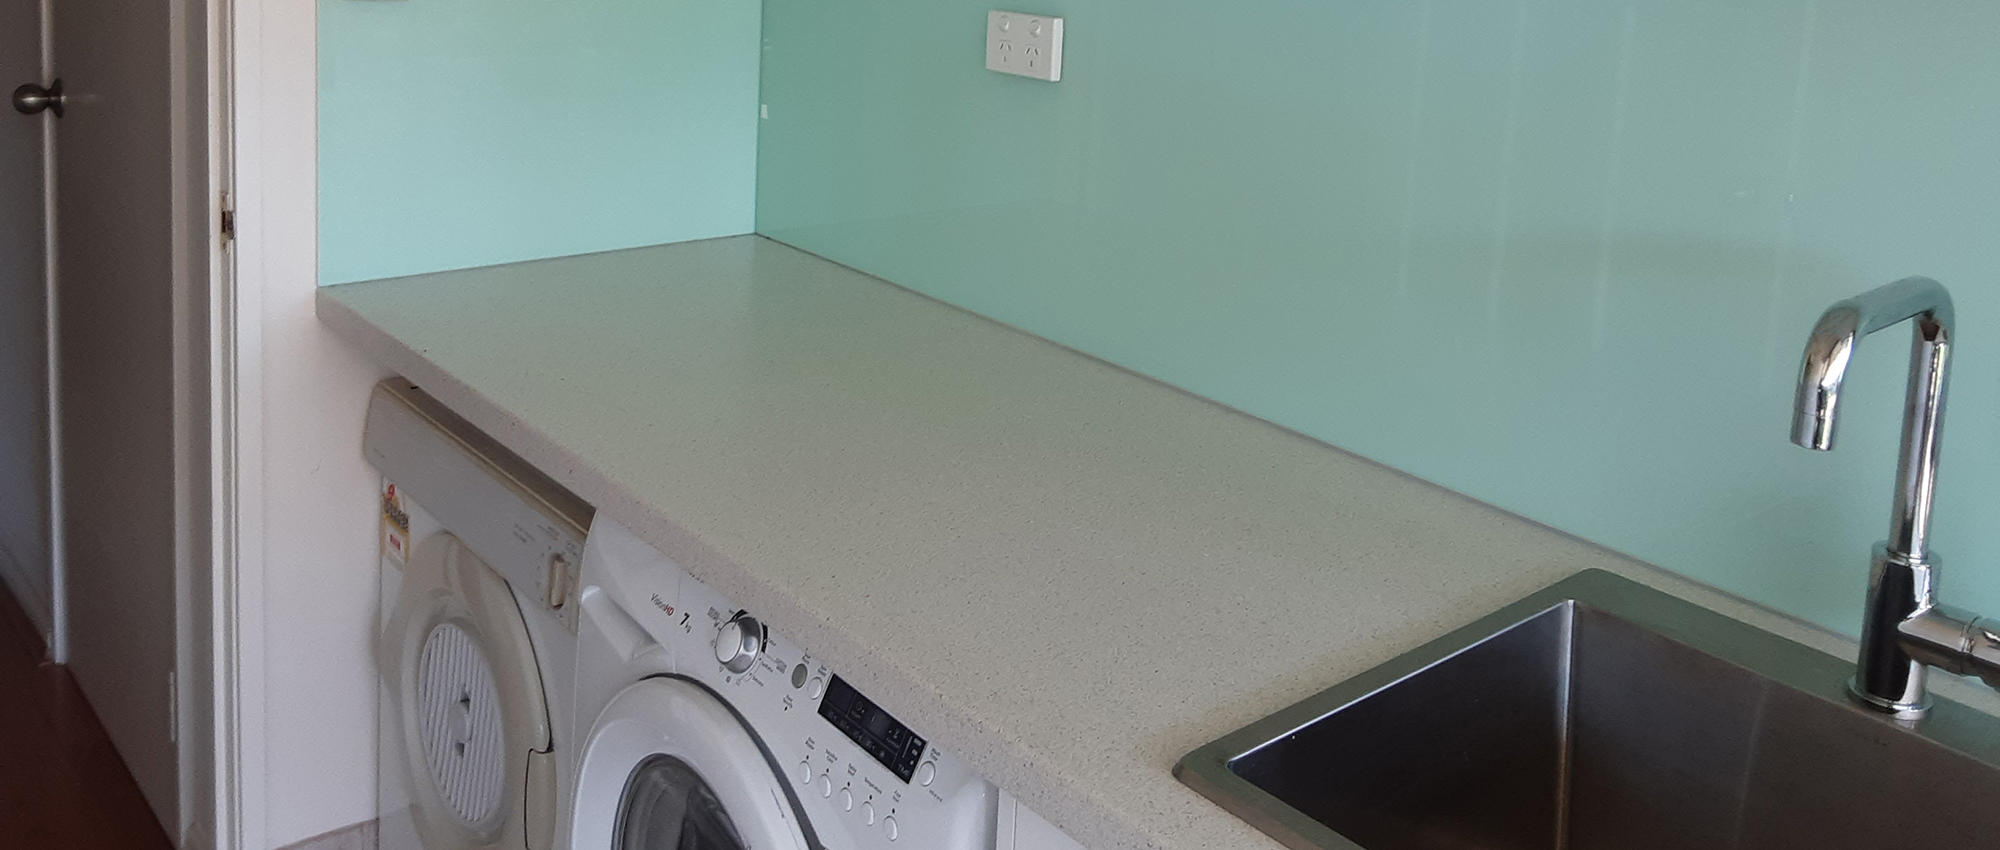 Office_Plus_Perth_Laundry_Renovation_maintenance_splashback